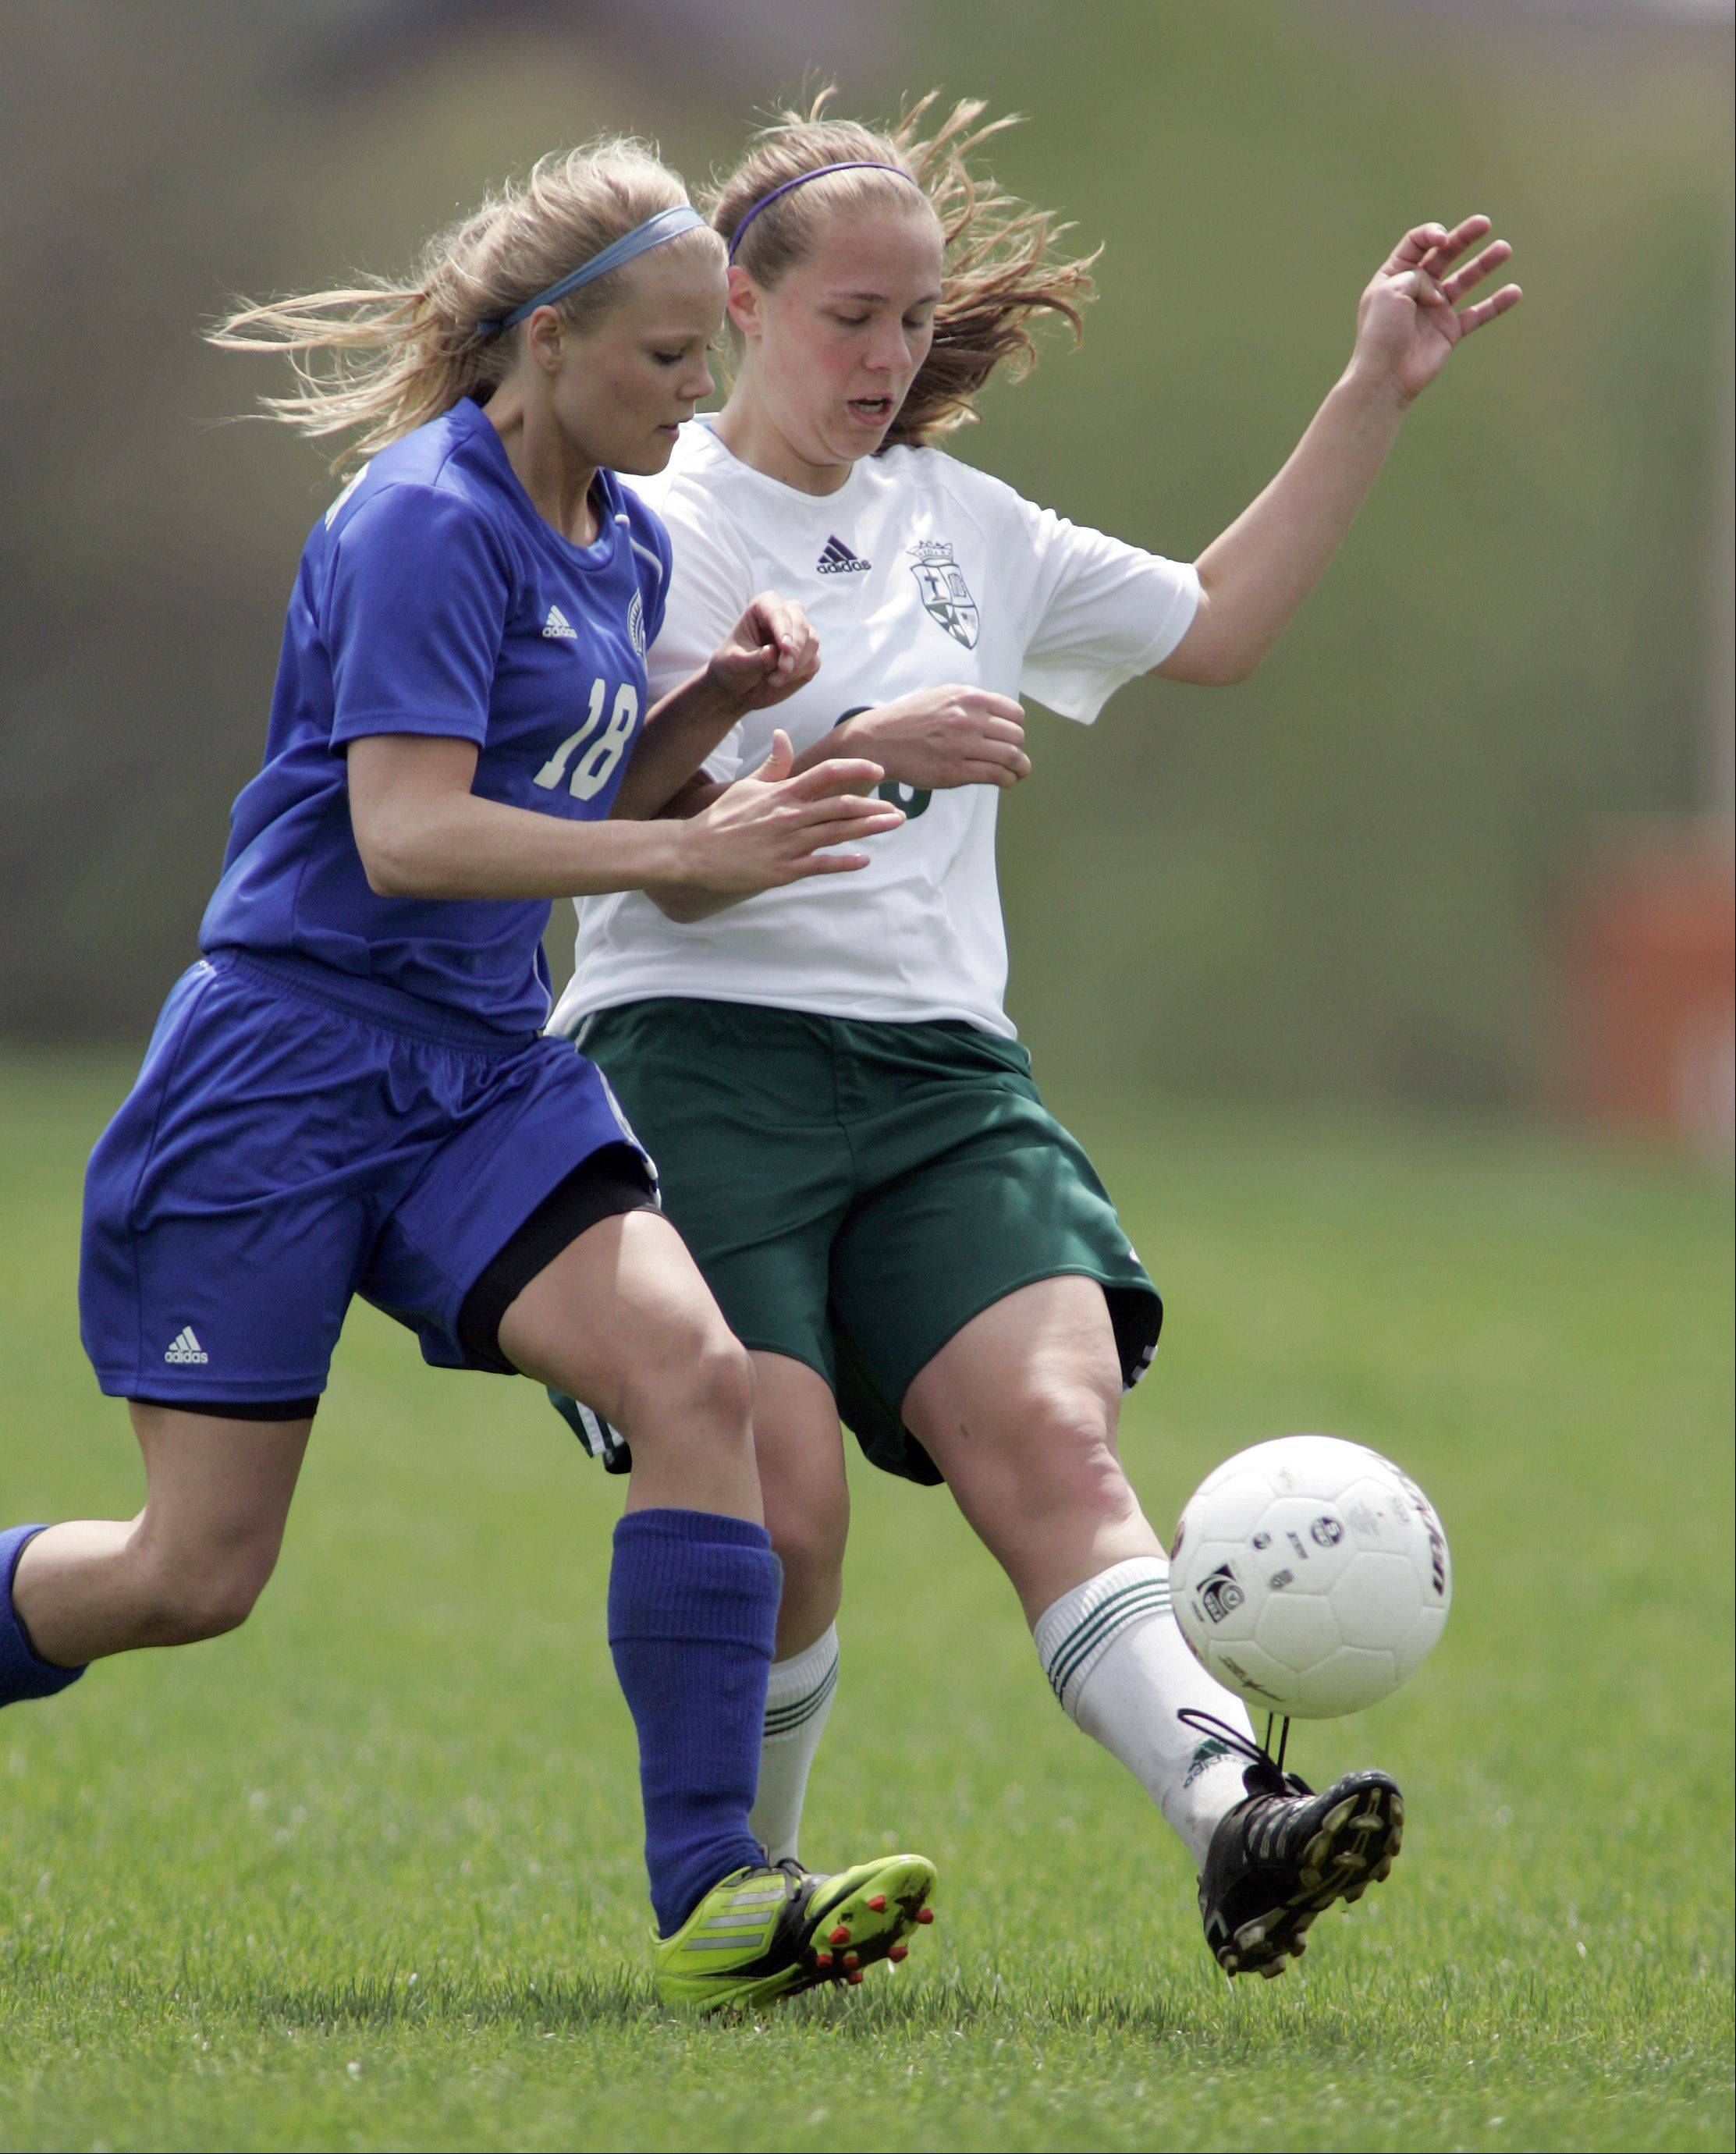 Westminster's McKaila Hays pressures Casey Gredzieleski of St. Edward Saturday.